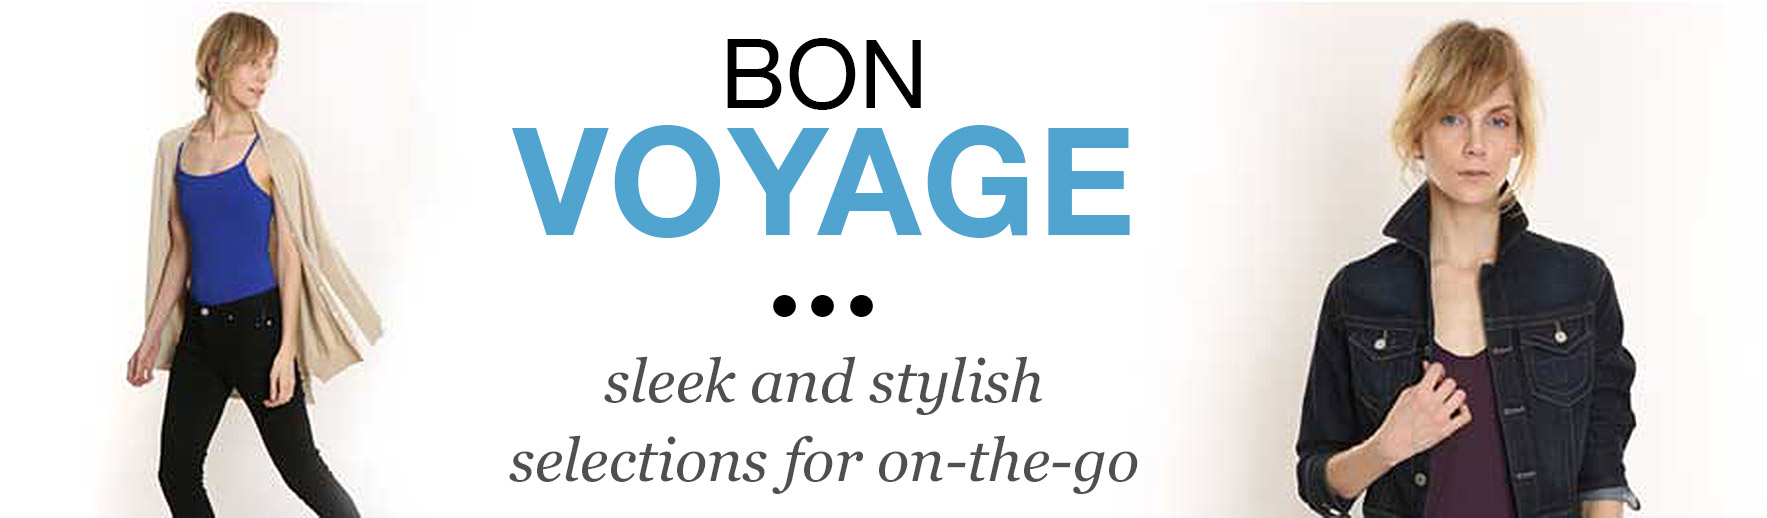 Bon Voyage - sleek and stylish selections for on-the-go